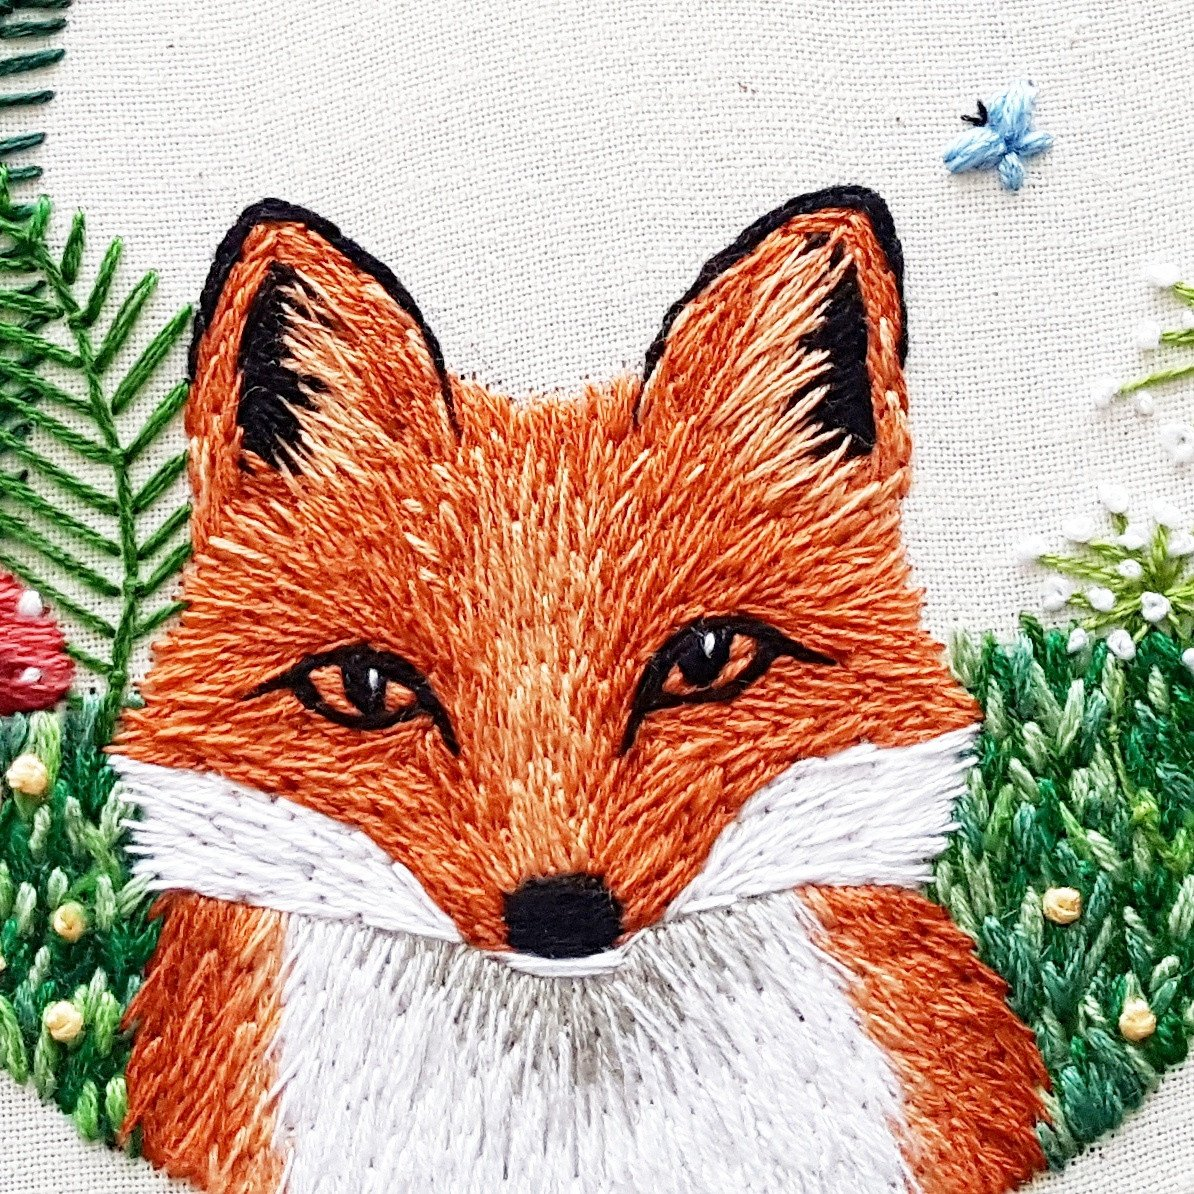 The Little Fox hand embroidery by Jessica Long of Namaste Hand Embroidery